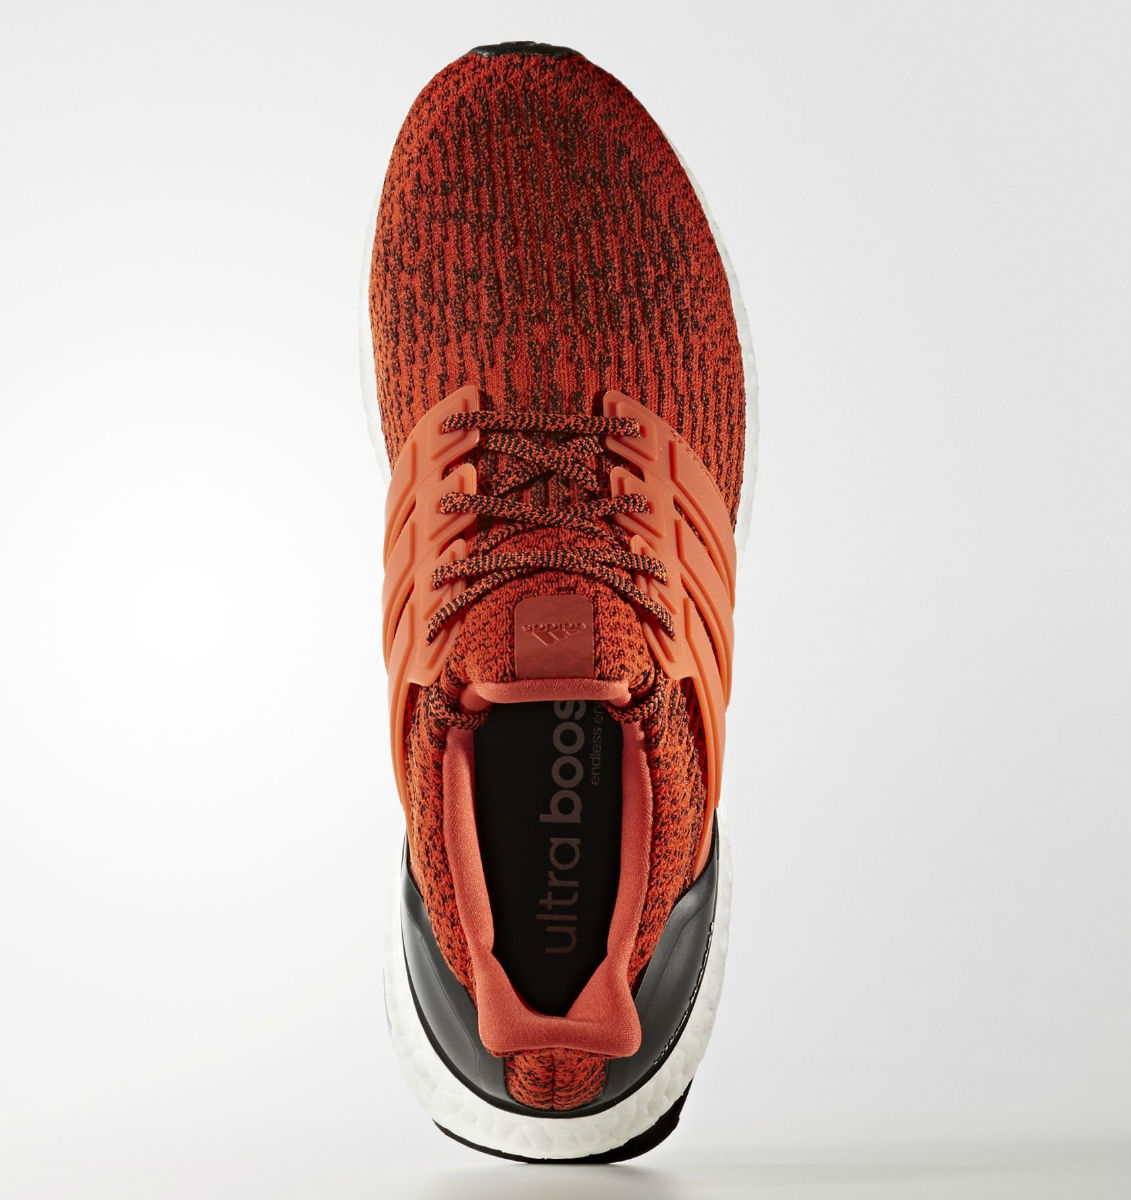 Adidas Ultra Boost Energy Red Release Date Top S80635